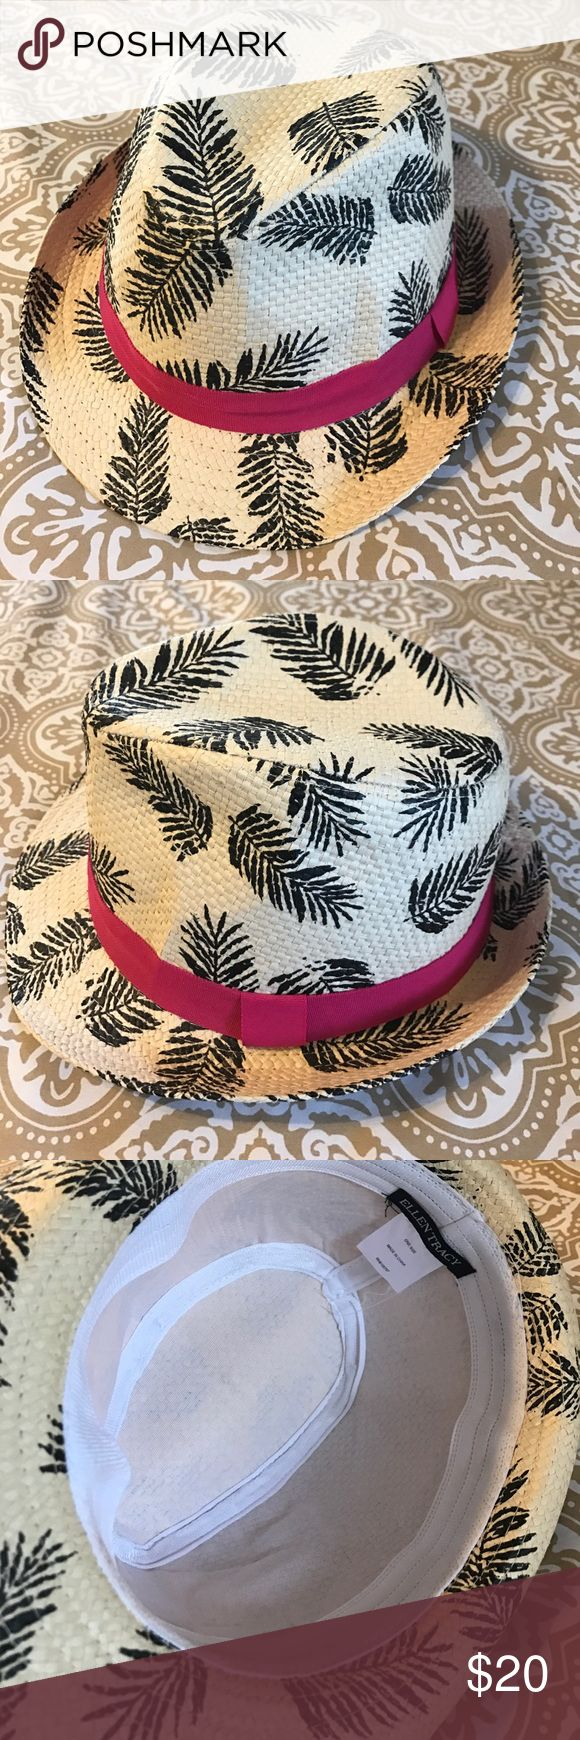 Ellen Tracy Palm Tree & Pink Beach Hat Fedora Cute as can be! ☀️ Turn heads while soaking up the sun in this adorable Ellen Tracy woven palm tree Fedora with a pink ribbon trim. Brand new-never worn. Mint condition, perfect for a trip to the beach or a day spent out in the sun! 💦 Ellen Tracy Accessories Hats